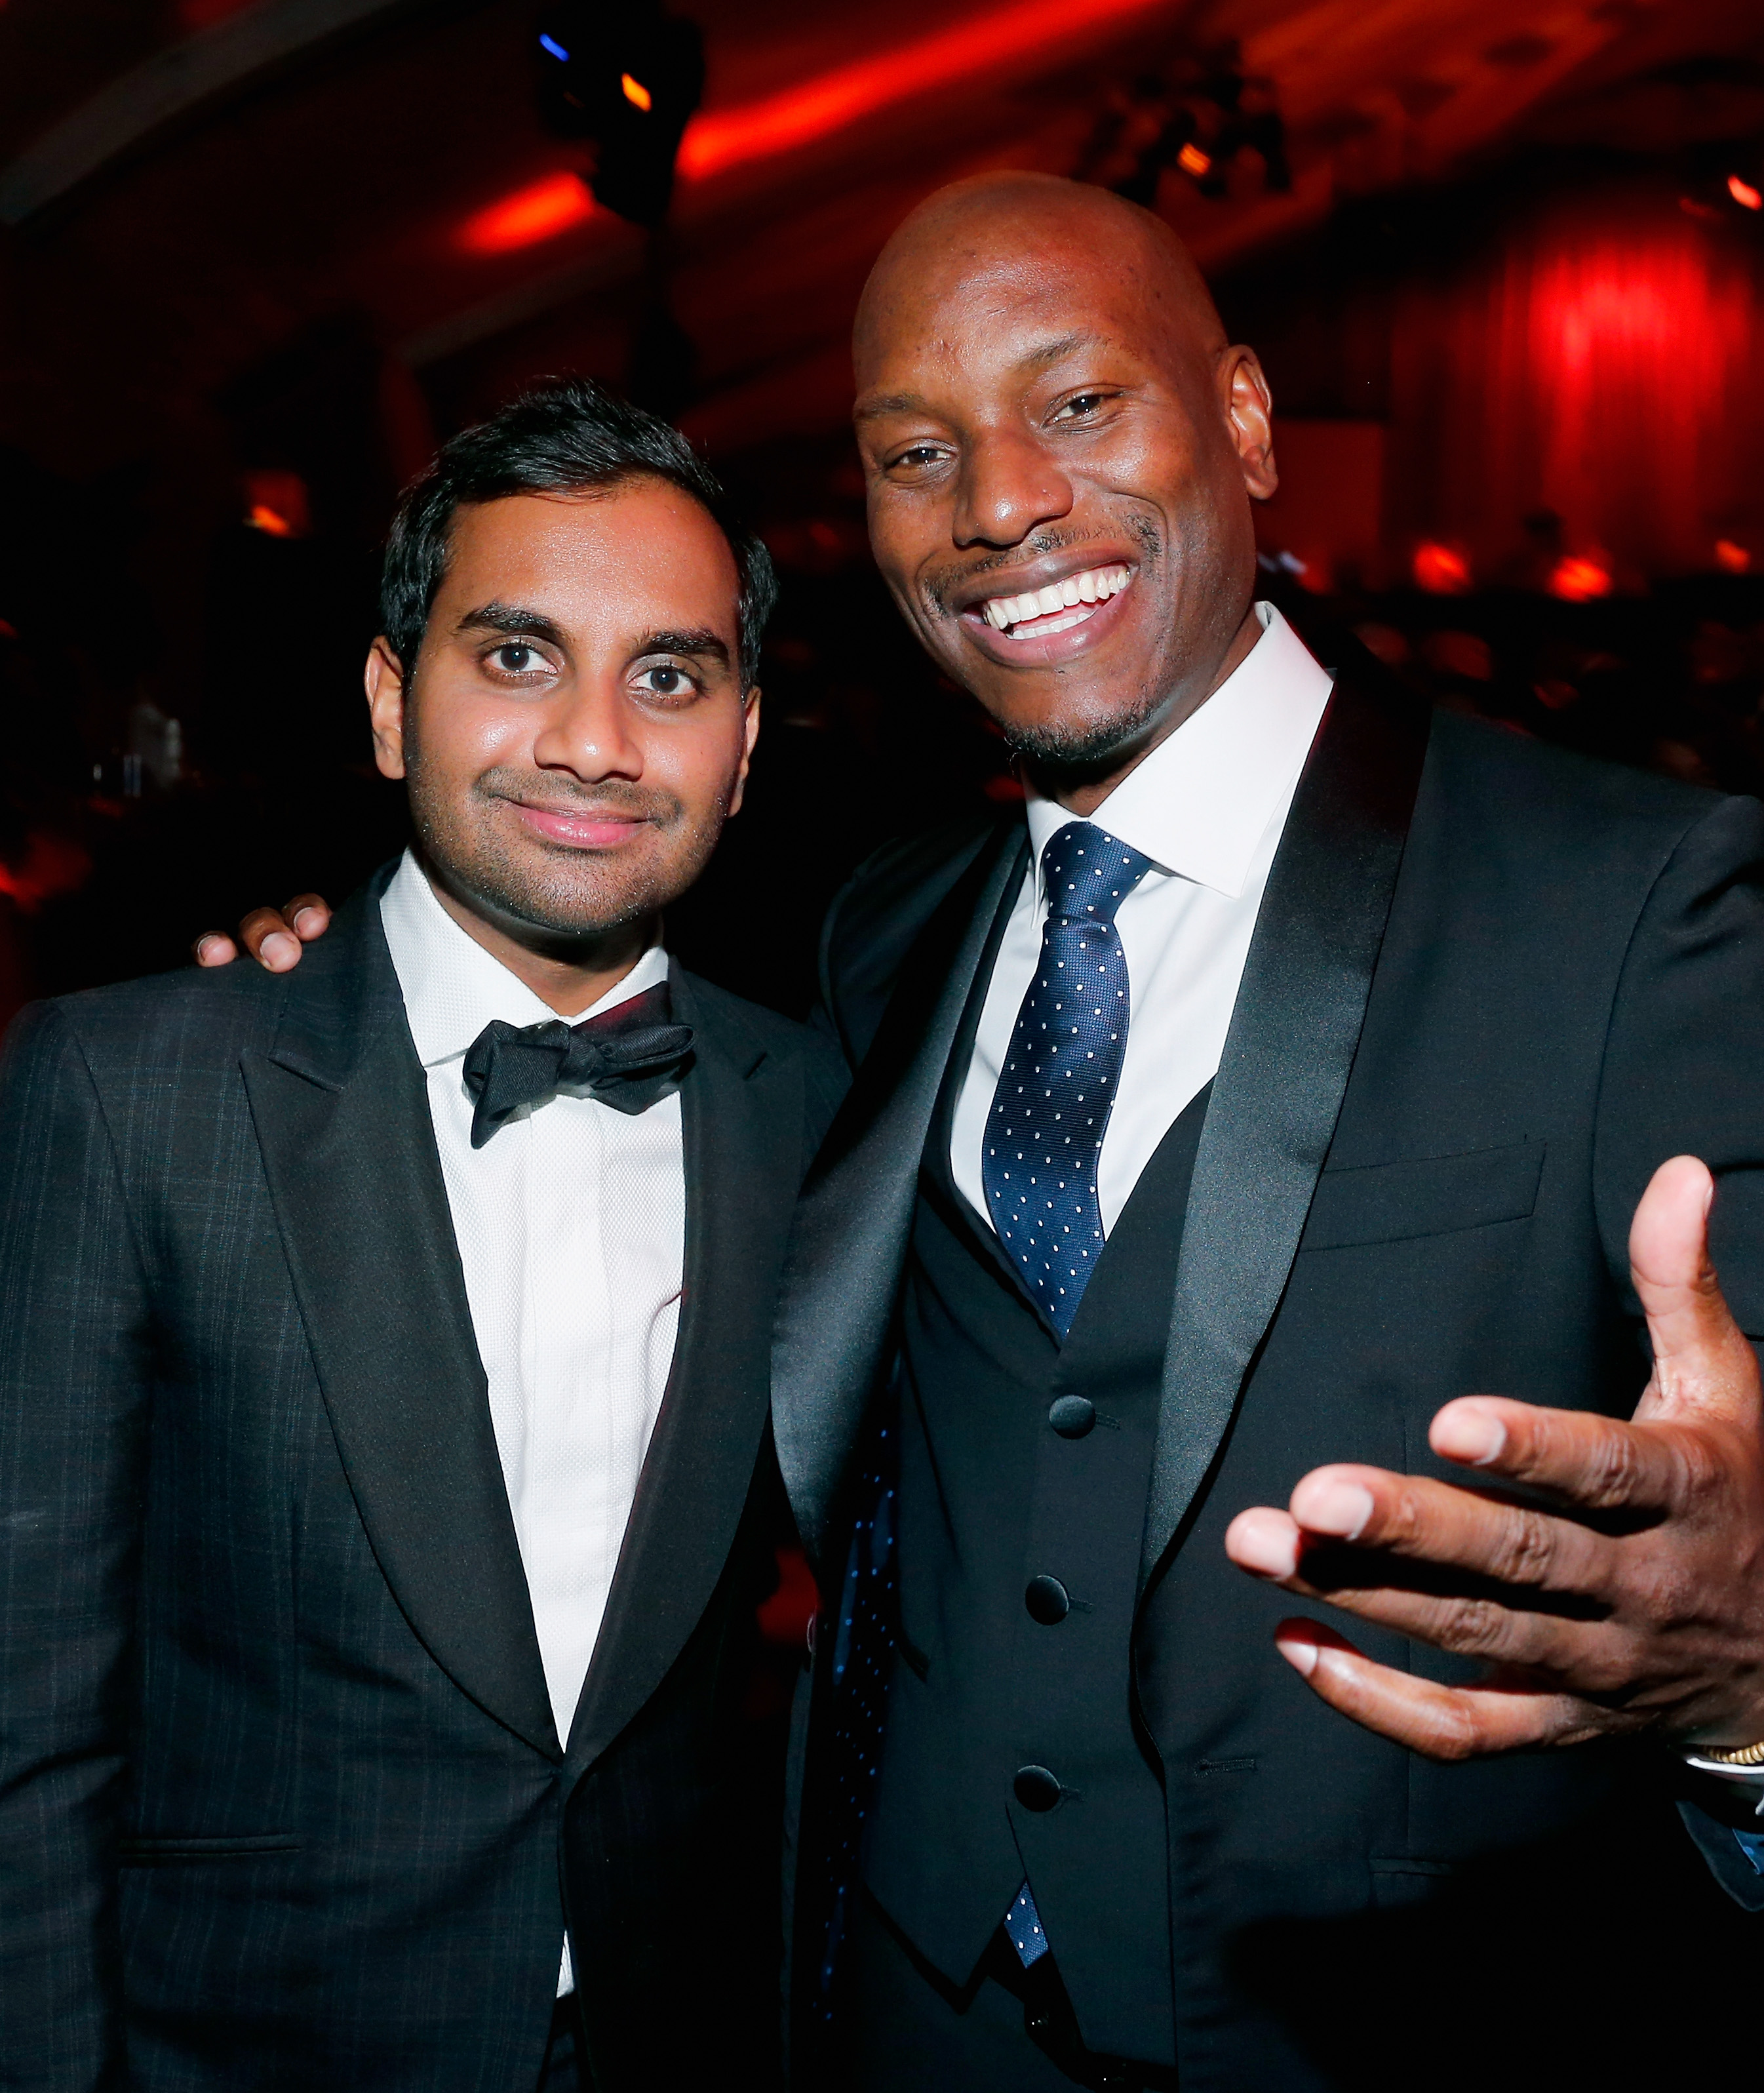 Comedian Aziz Ansari and actor Tyrese Gibson attend The Weinstein Company and Netflix Golden Globe Party on January 10, 2016 in Beverly Hills, California.